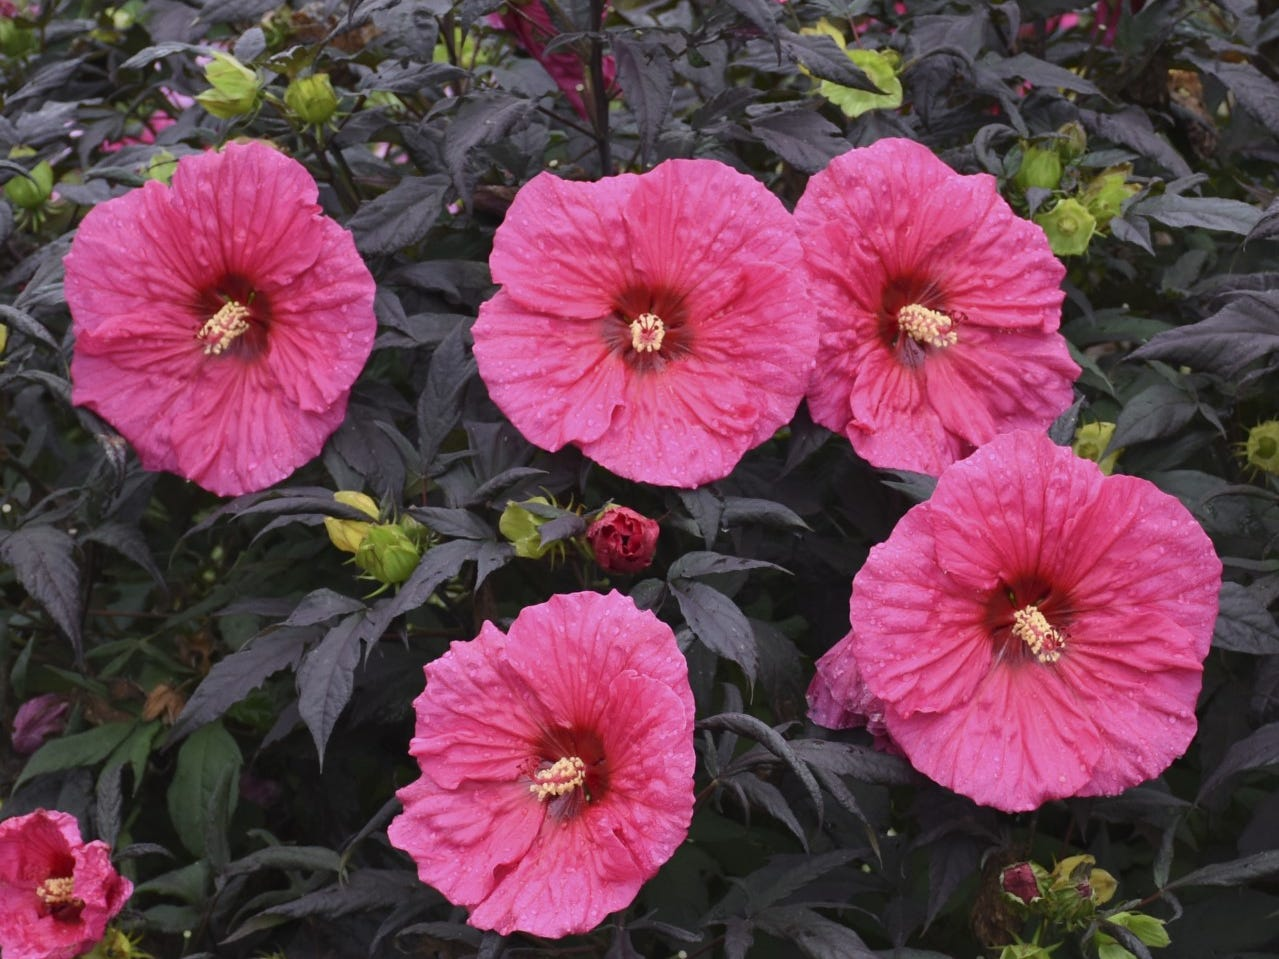 Hibiscus Evening Rose, a new plant that will be available in 2020, is lovely for sharing on social media.